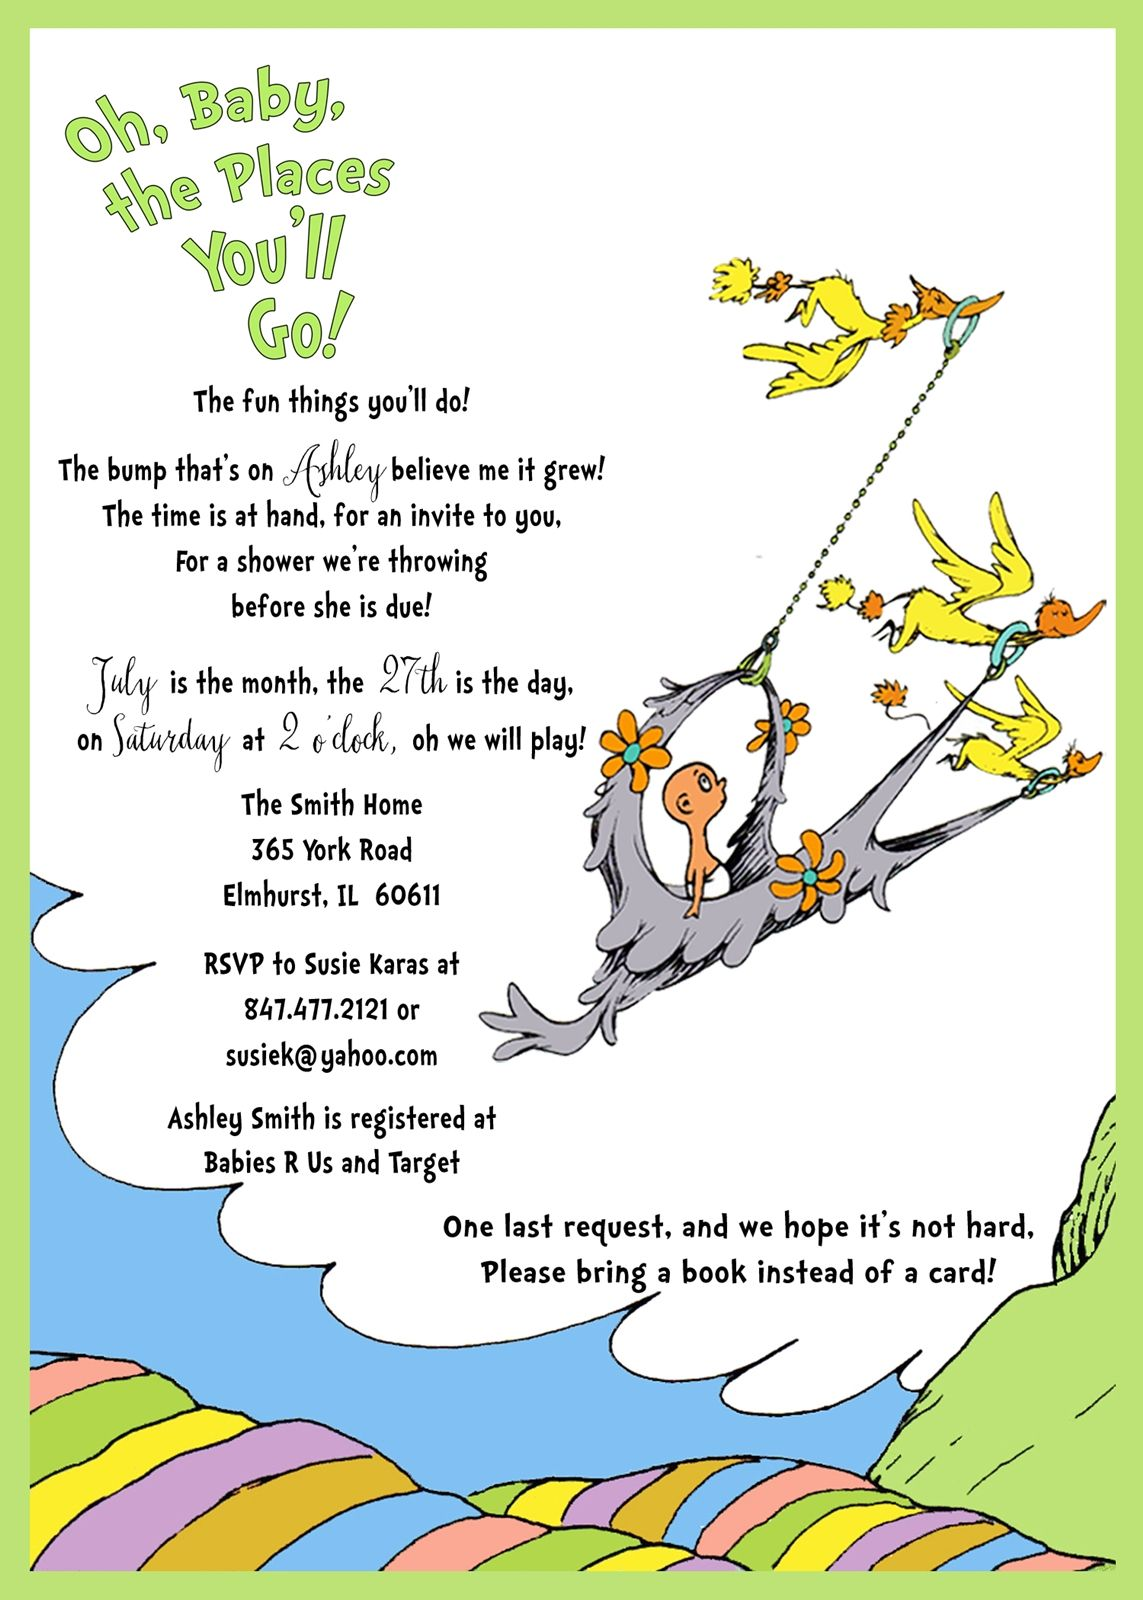 Dr. Seuss Baby Shower Invitation, Oh Baby The Places You\'ll Go ...